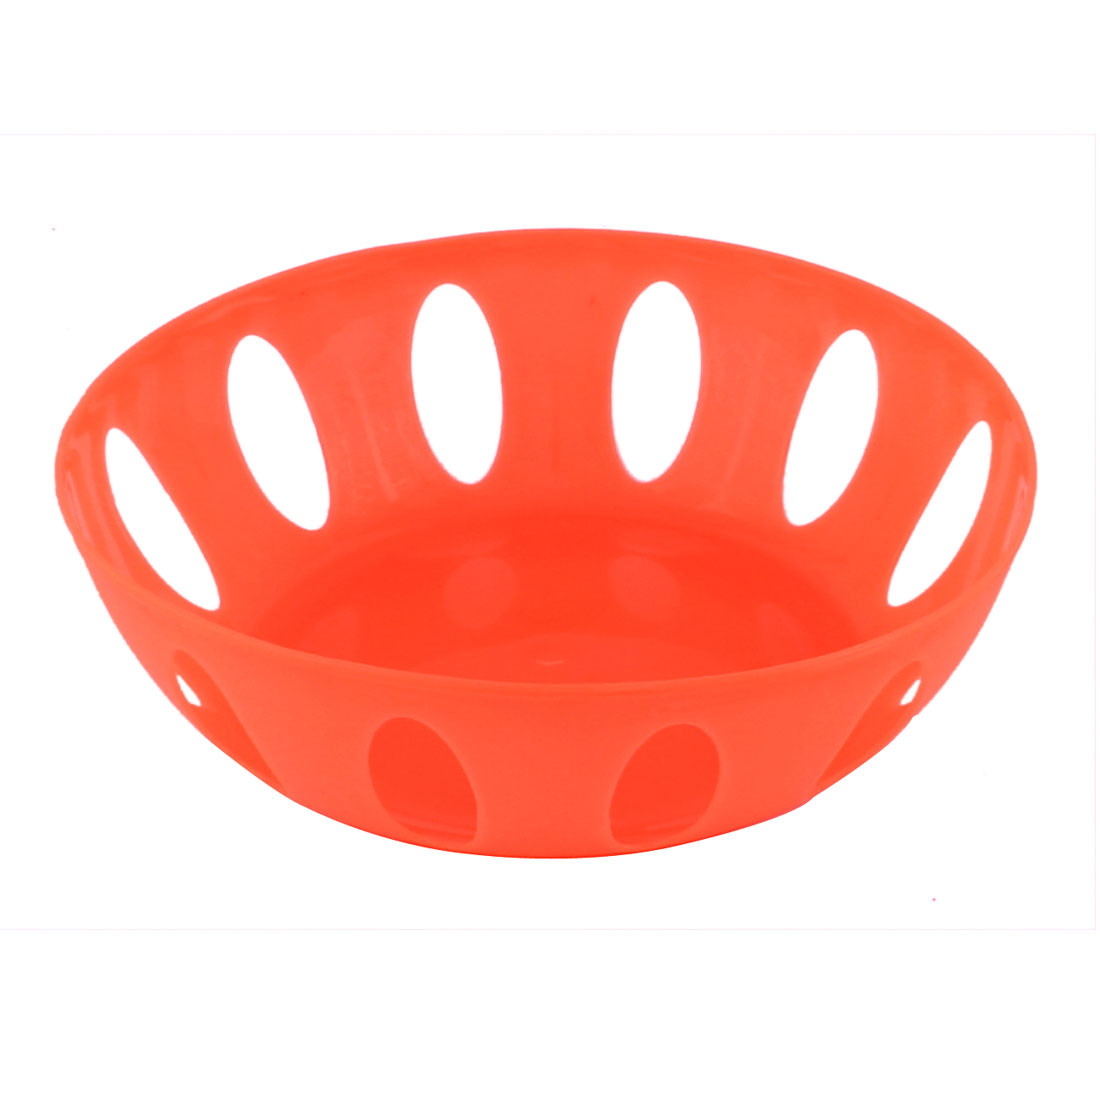 Home Living Room Kitchenware Plastic Round Shaped Hollow Out Fruit Plate Basket Orange